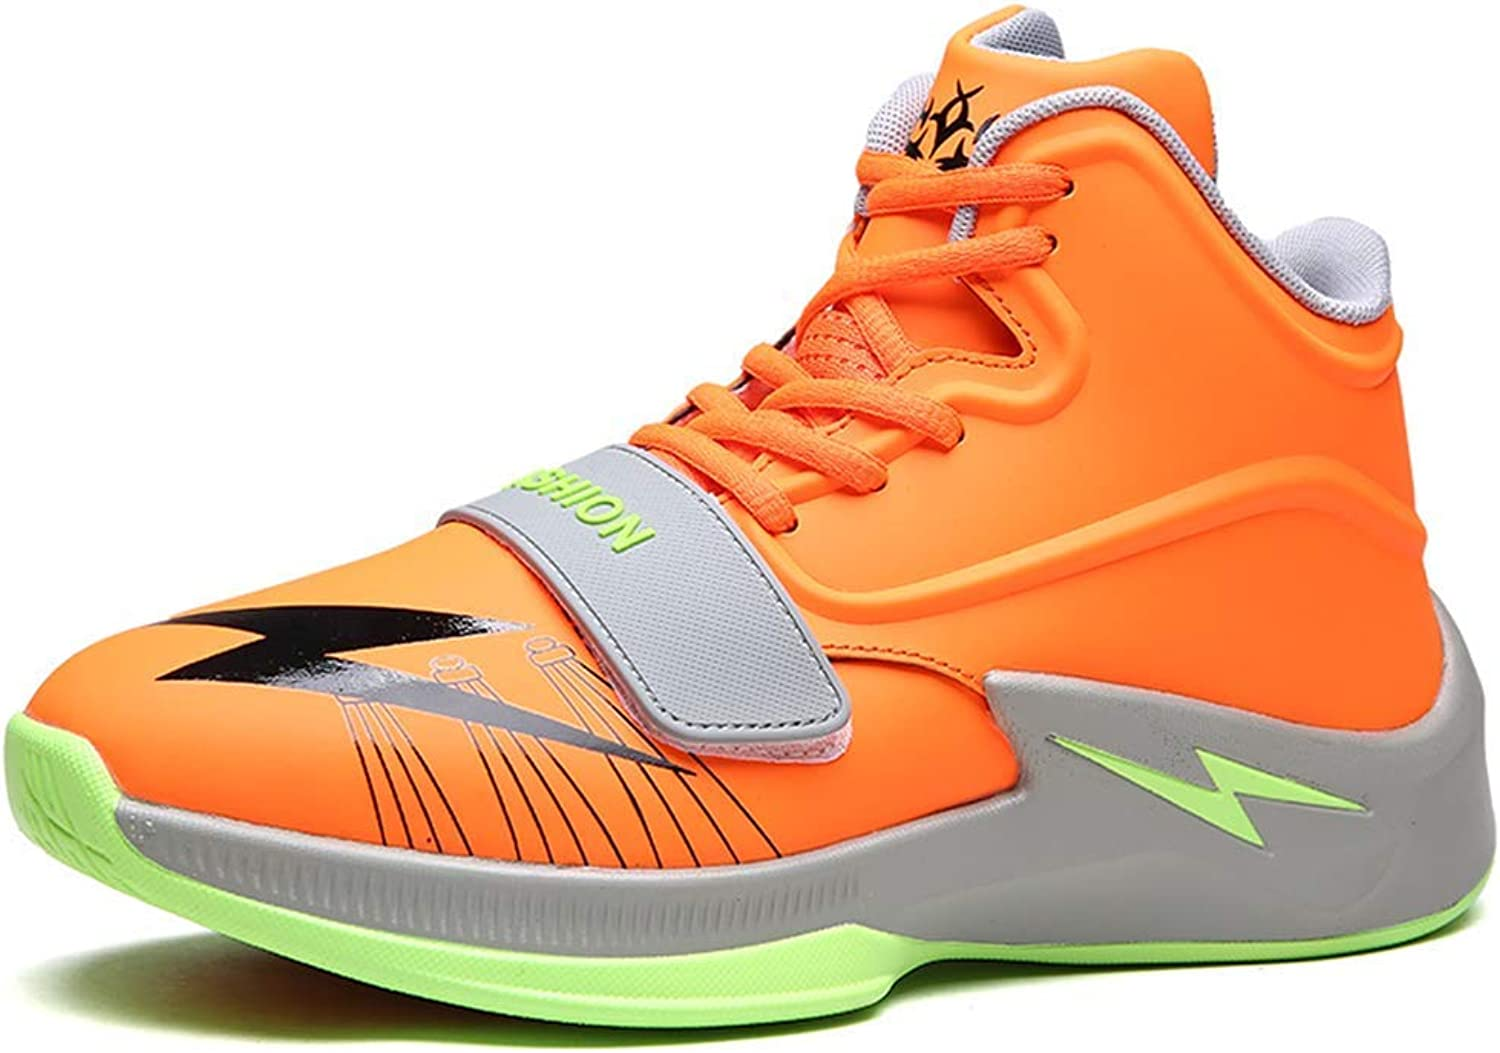 ZHRUI Men Basketball shoes Breathable Outdoor Sneakers Athletic Training Non-Slip Ankle Sport Boots (color   orange, Size   7=41 EU)